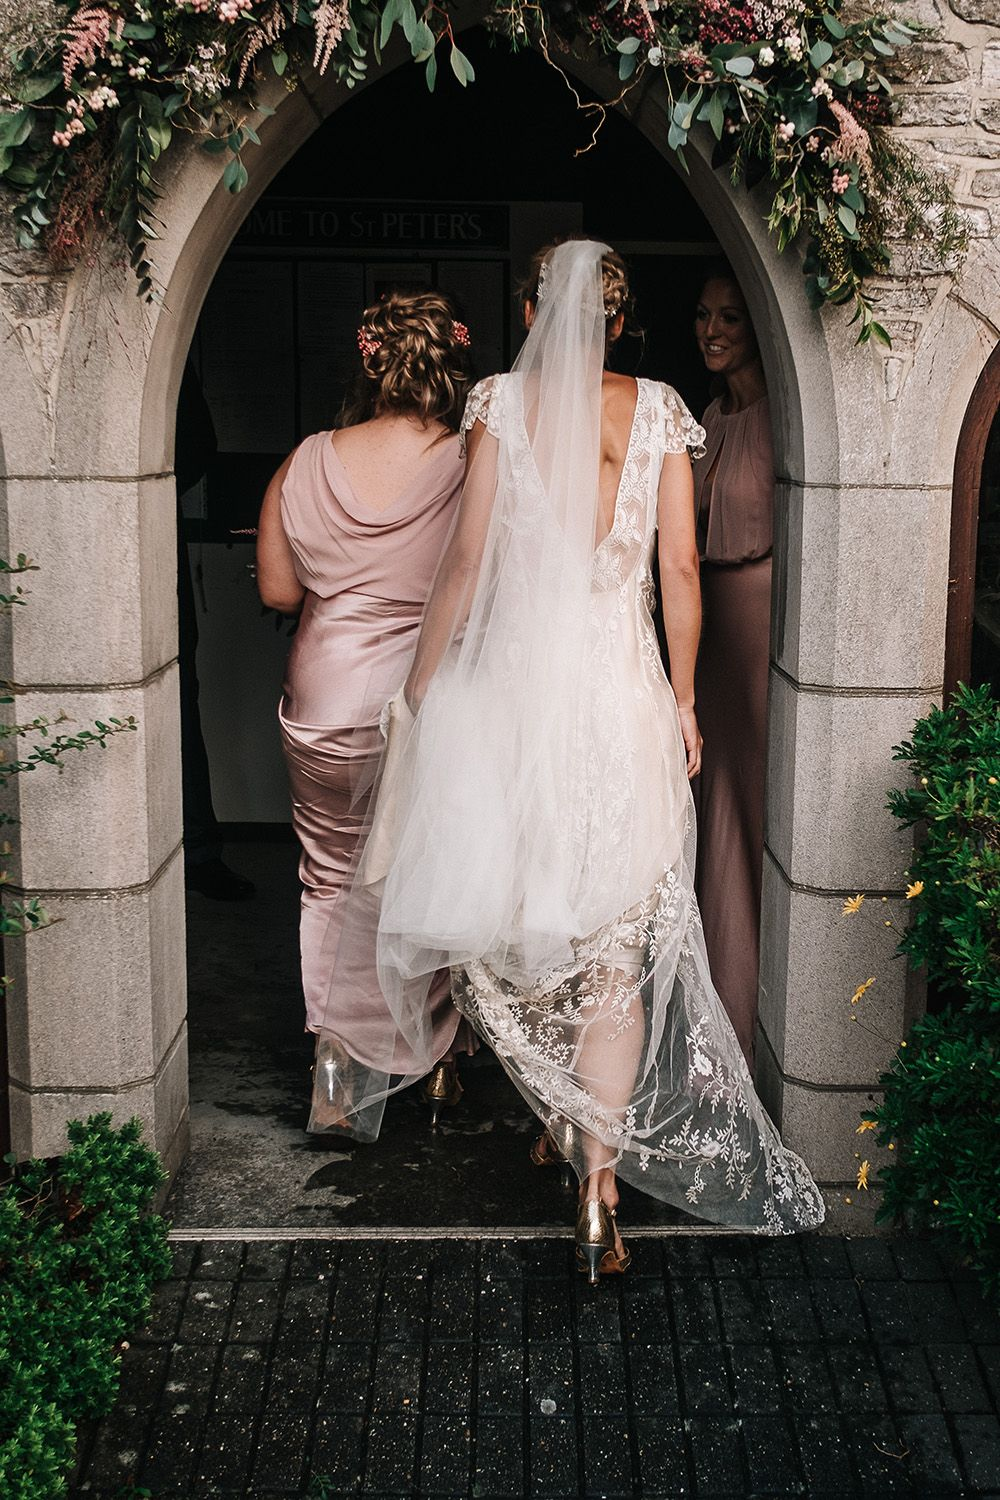 Jane Bourvis Bride For A Coastal Wedding On The Isle Of Wight With Images By Jason Mark Harris